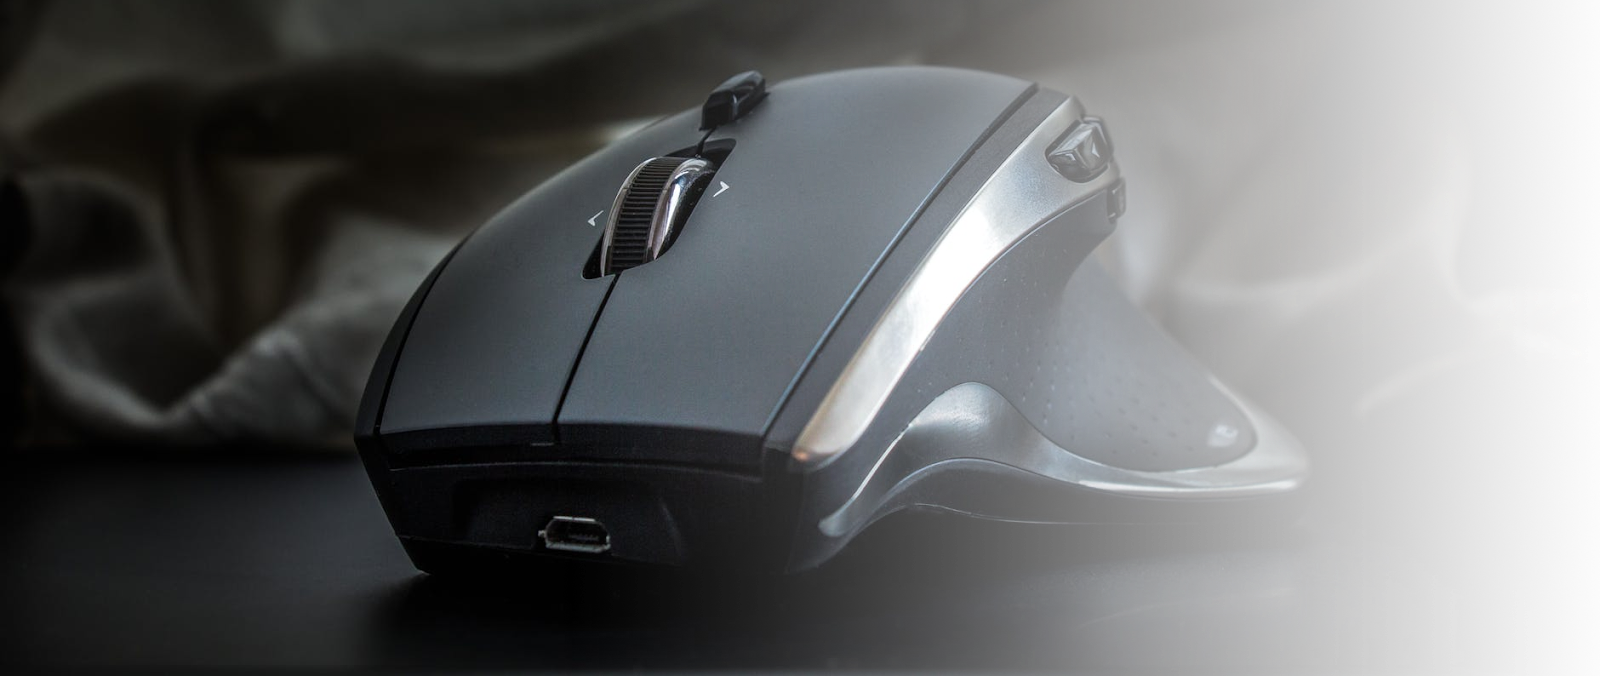 Normal Computer Mouse Issues and Simple Solutions